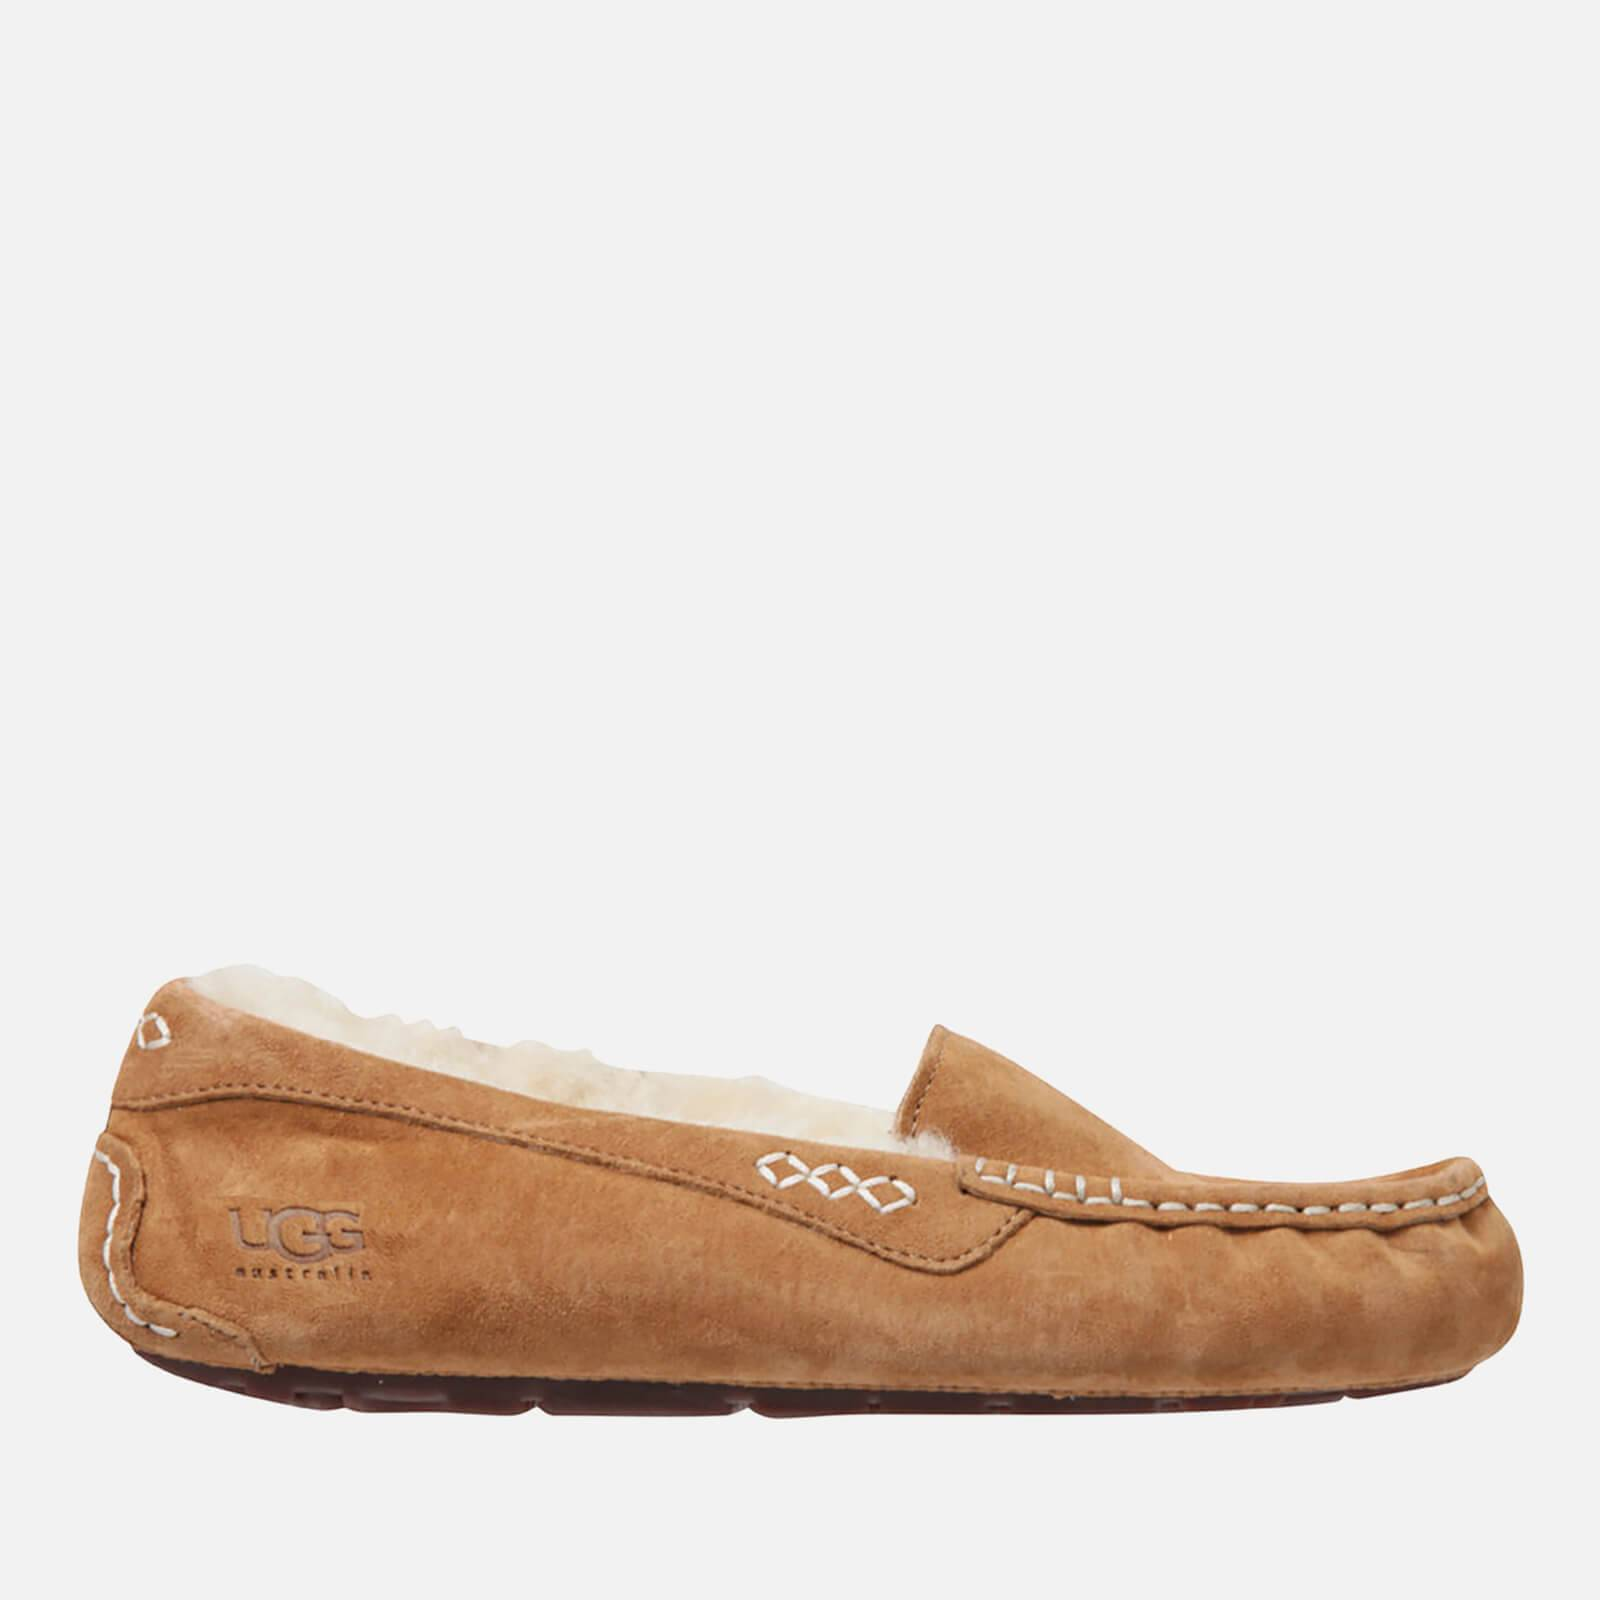 UGG Women's Ansley Moccasin Suede Slippers - Chestnut - UK 5